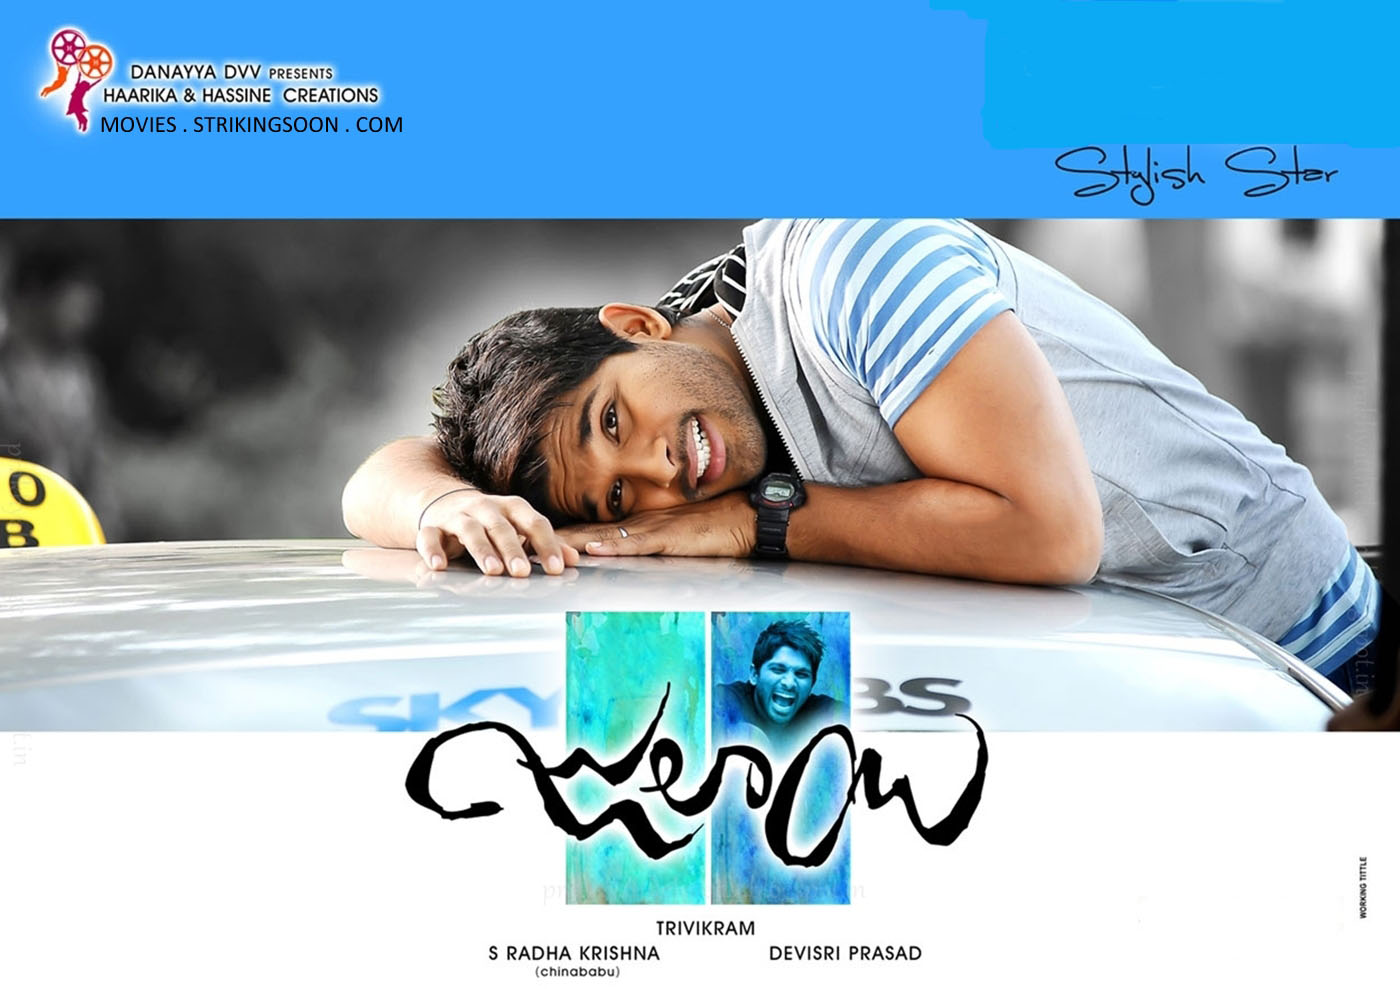 Julayi telugu movie mp3 songs free download south mp3 / Dare